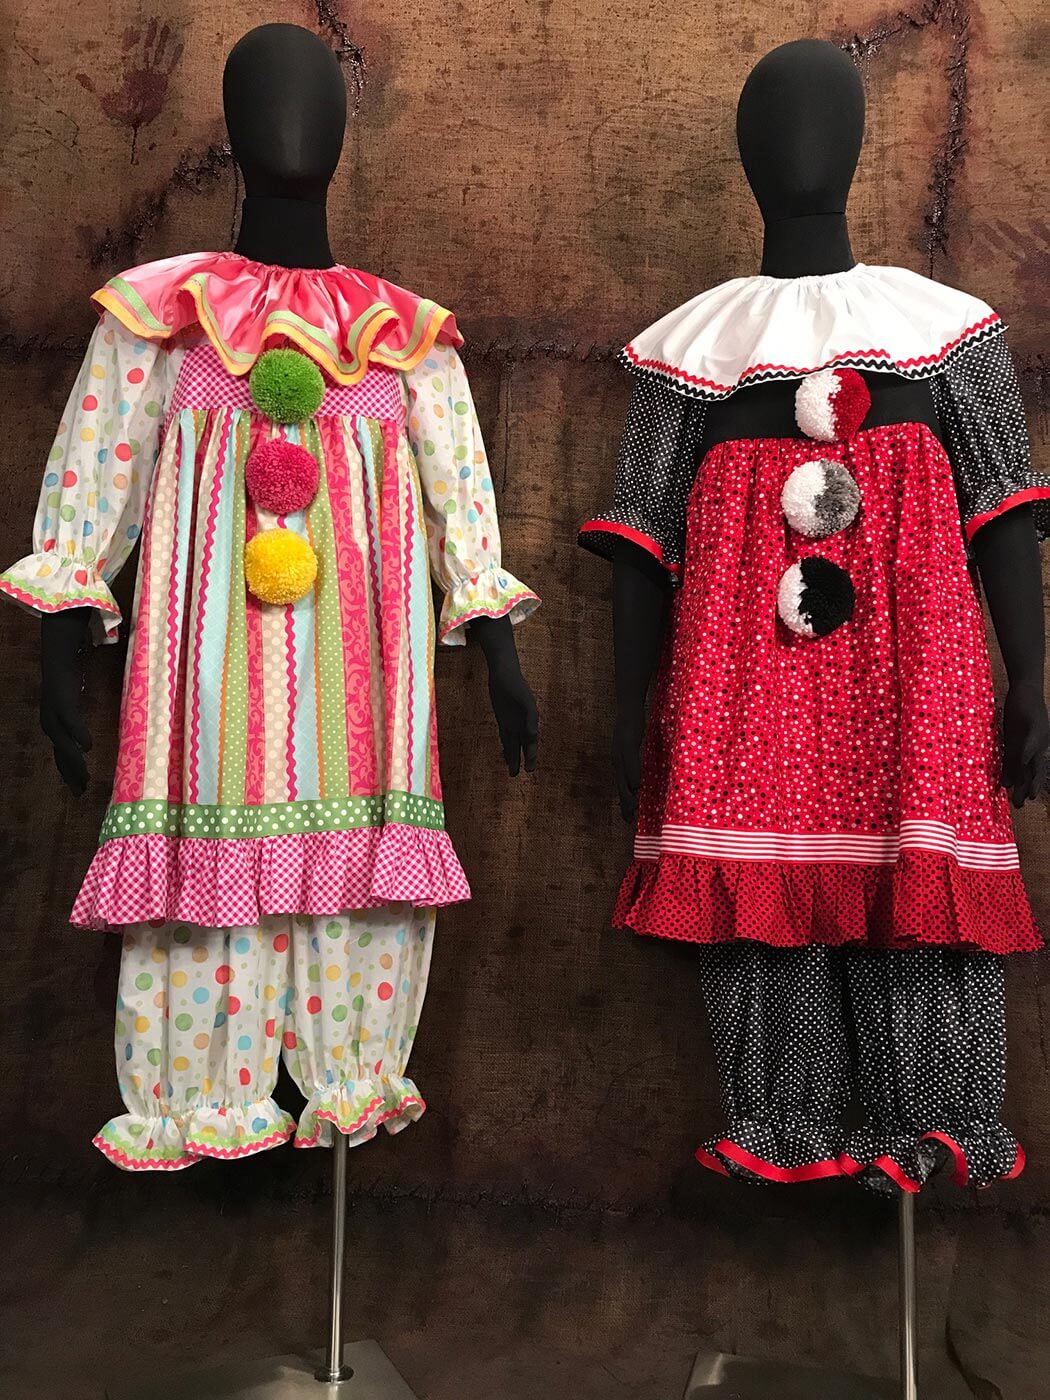 Dotty u0026 Knotty Crazy Clown Costumes : professional clown costume  - Germanpascual.Com